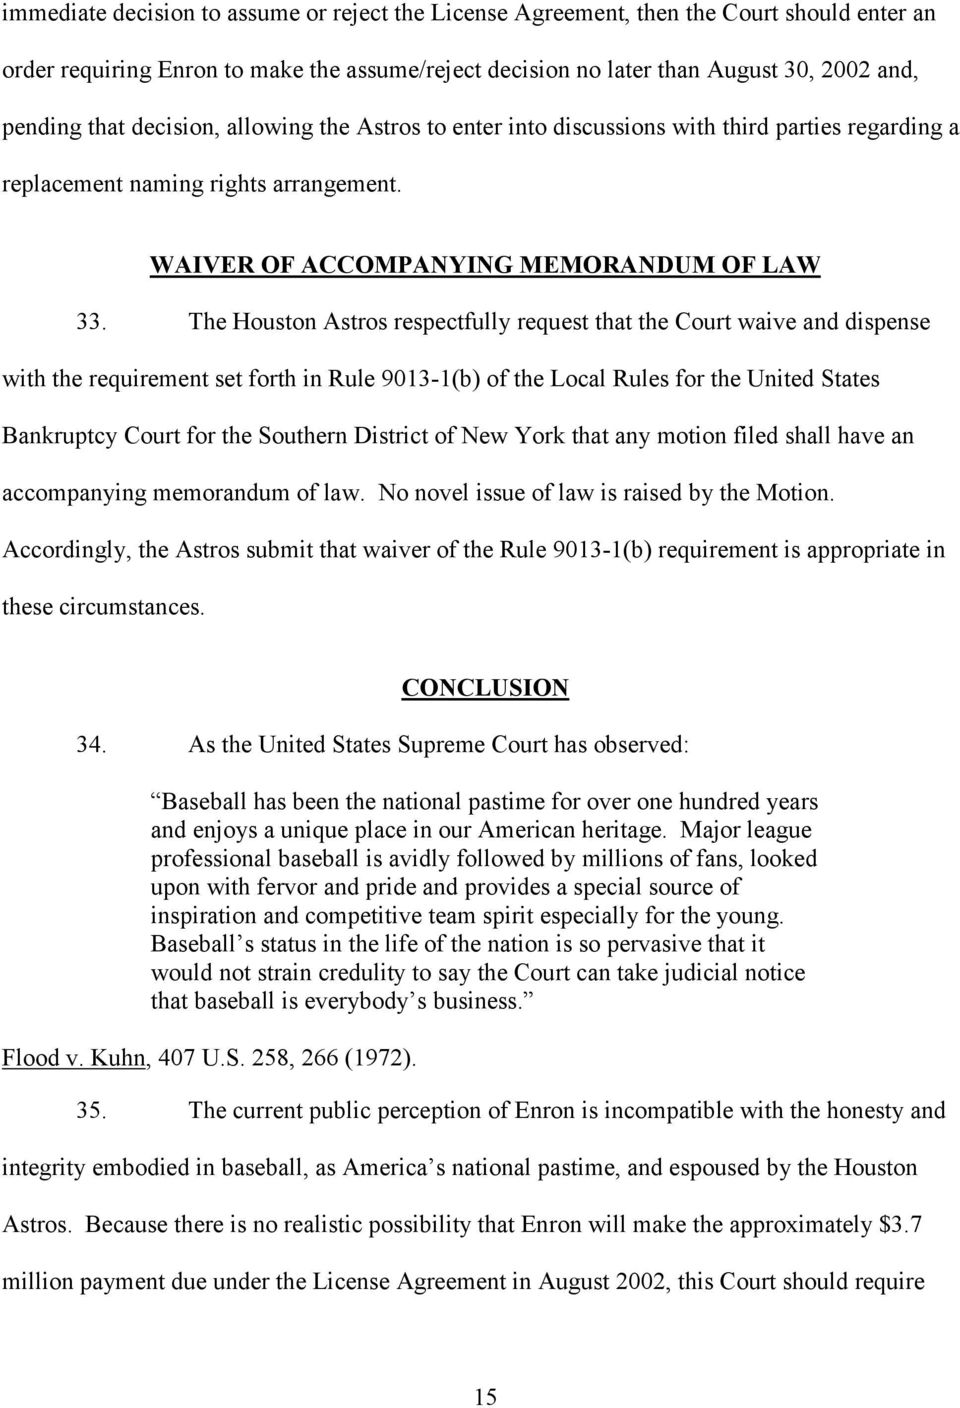 The Houston Astros respectfully request that the Court waive and dispense with the requirement set forth in Rule 9013-1(b) of the Local Rules for the United States Bankruptcy Court for the Southern